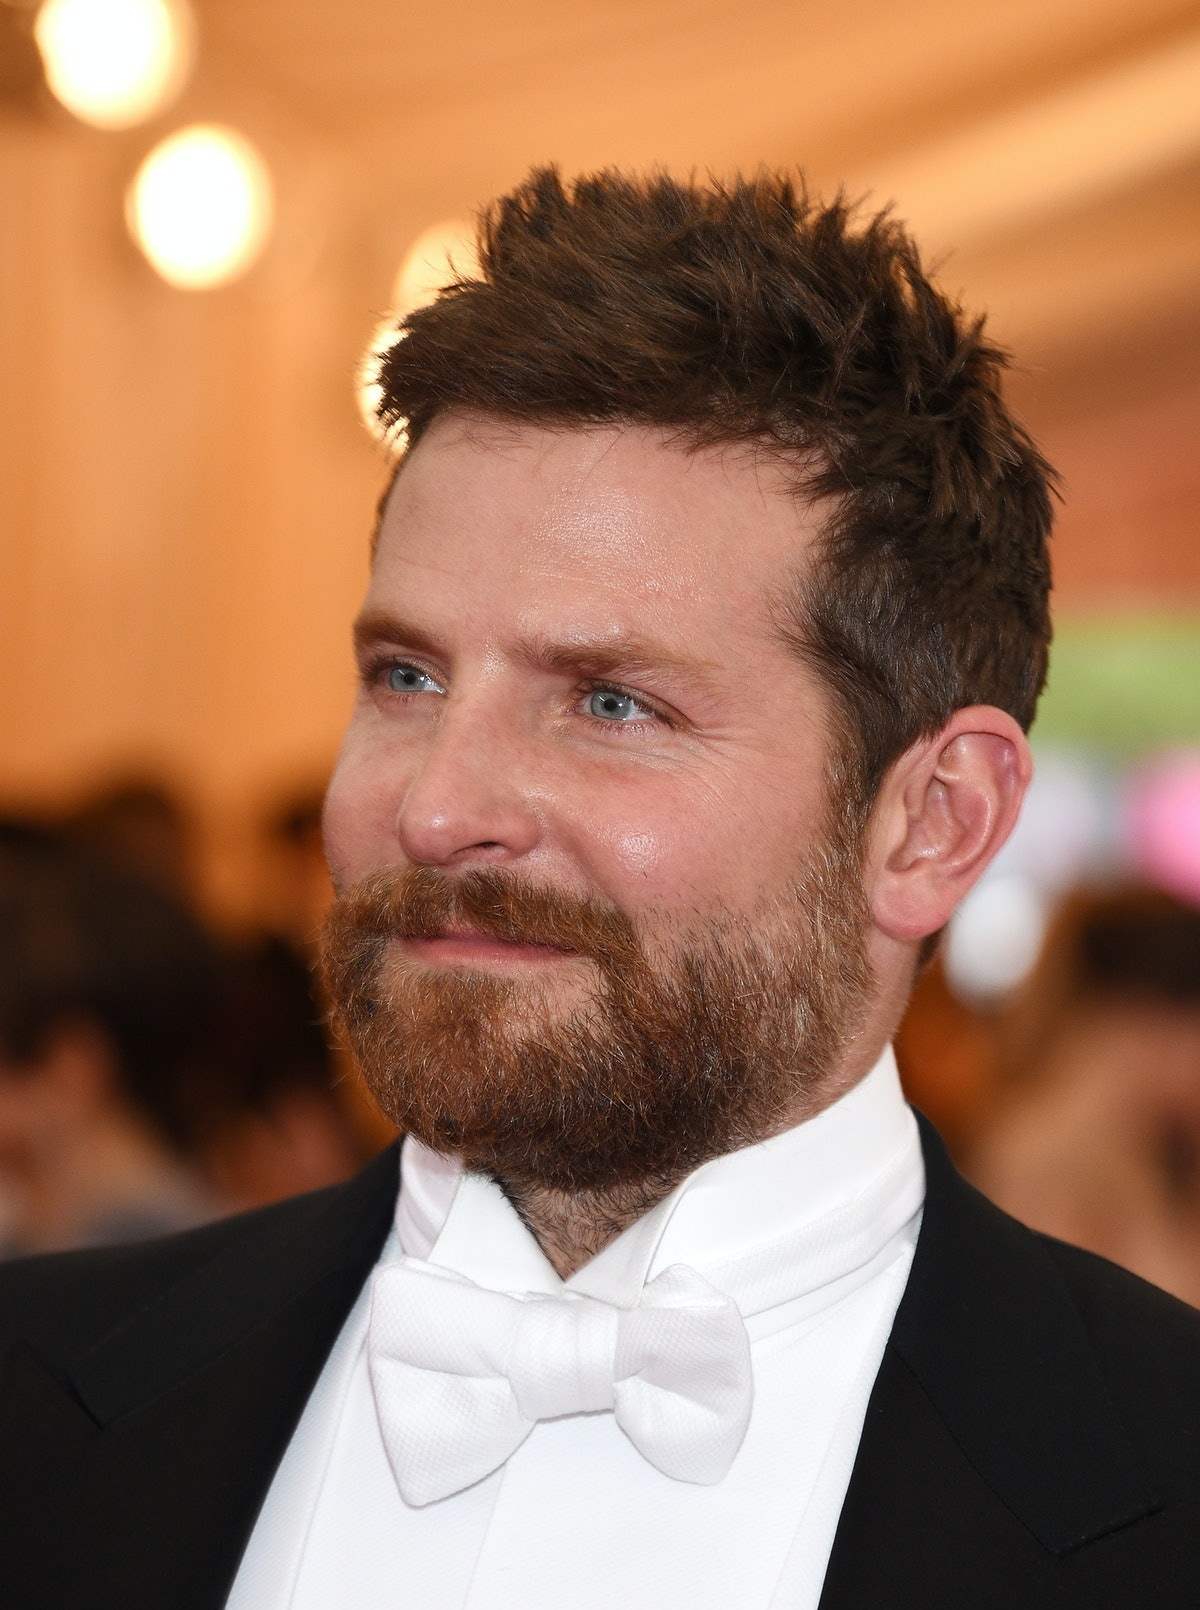 Bradley Cooper at the Met Gala Looks Like 'Hangover' Co ...